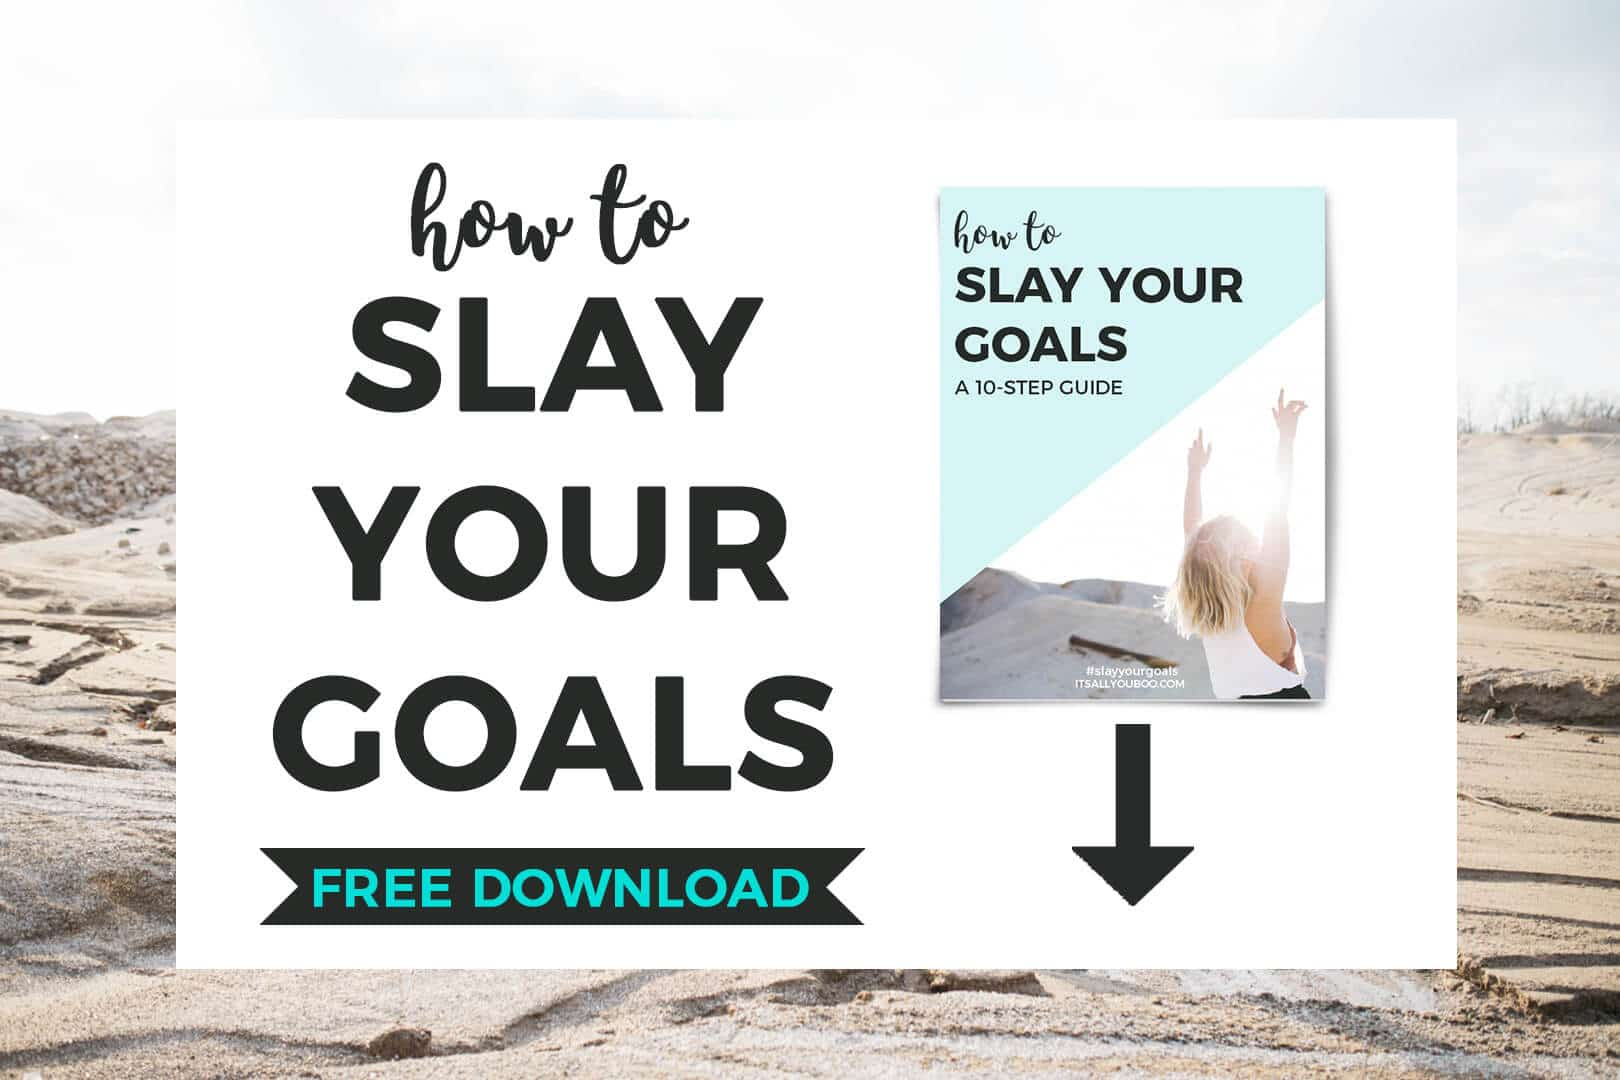 How do you achieve your dreams? How do you set goals and achieve them? Download your FREE 10-step Slay Your Goals Guide.